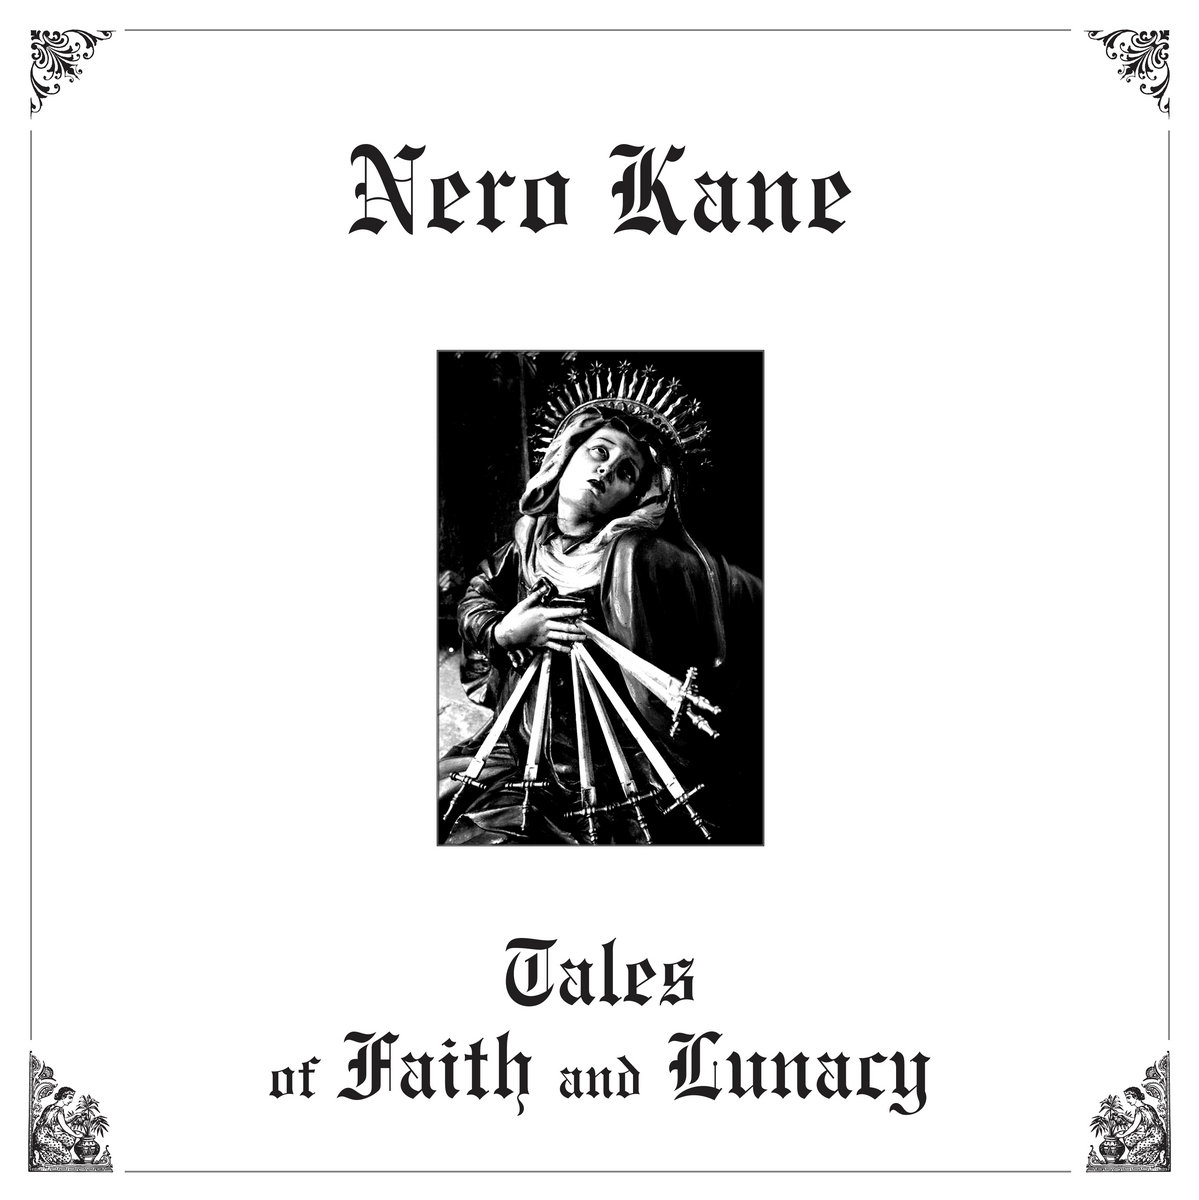 Nero Kane - Tales of Faith and Lunacy